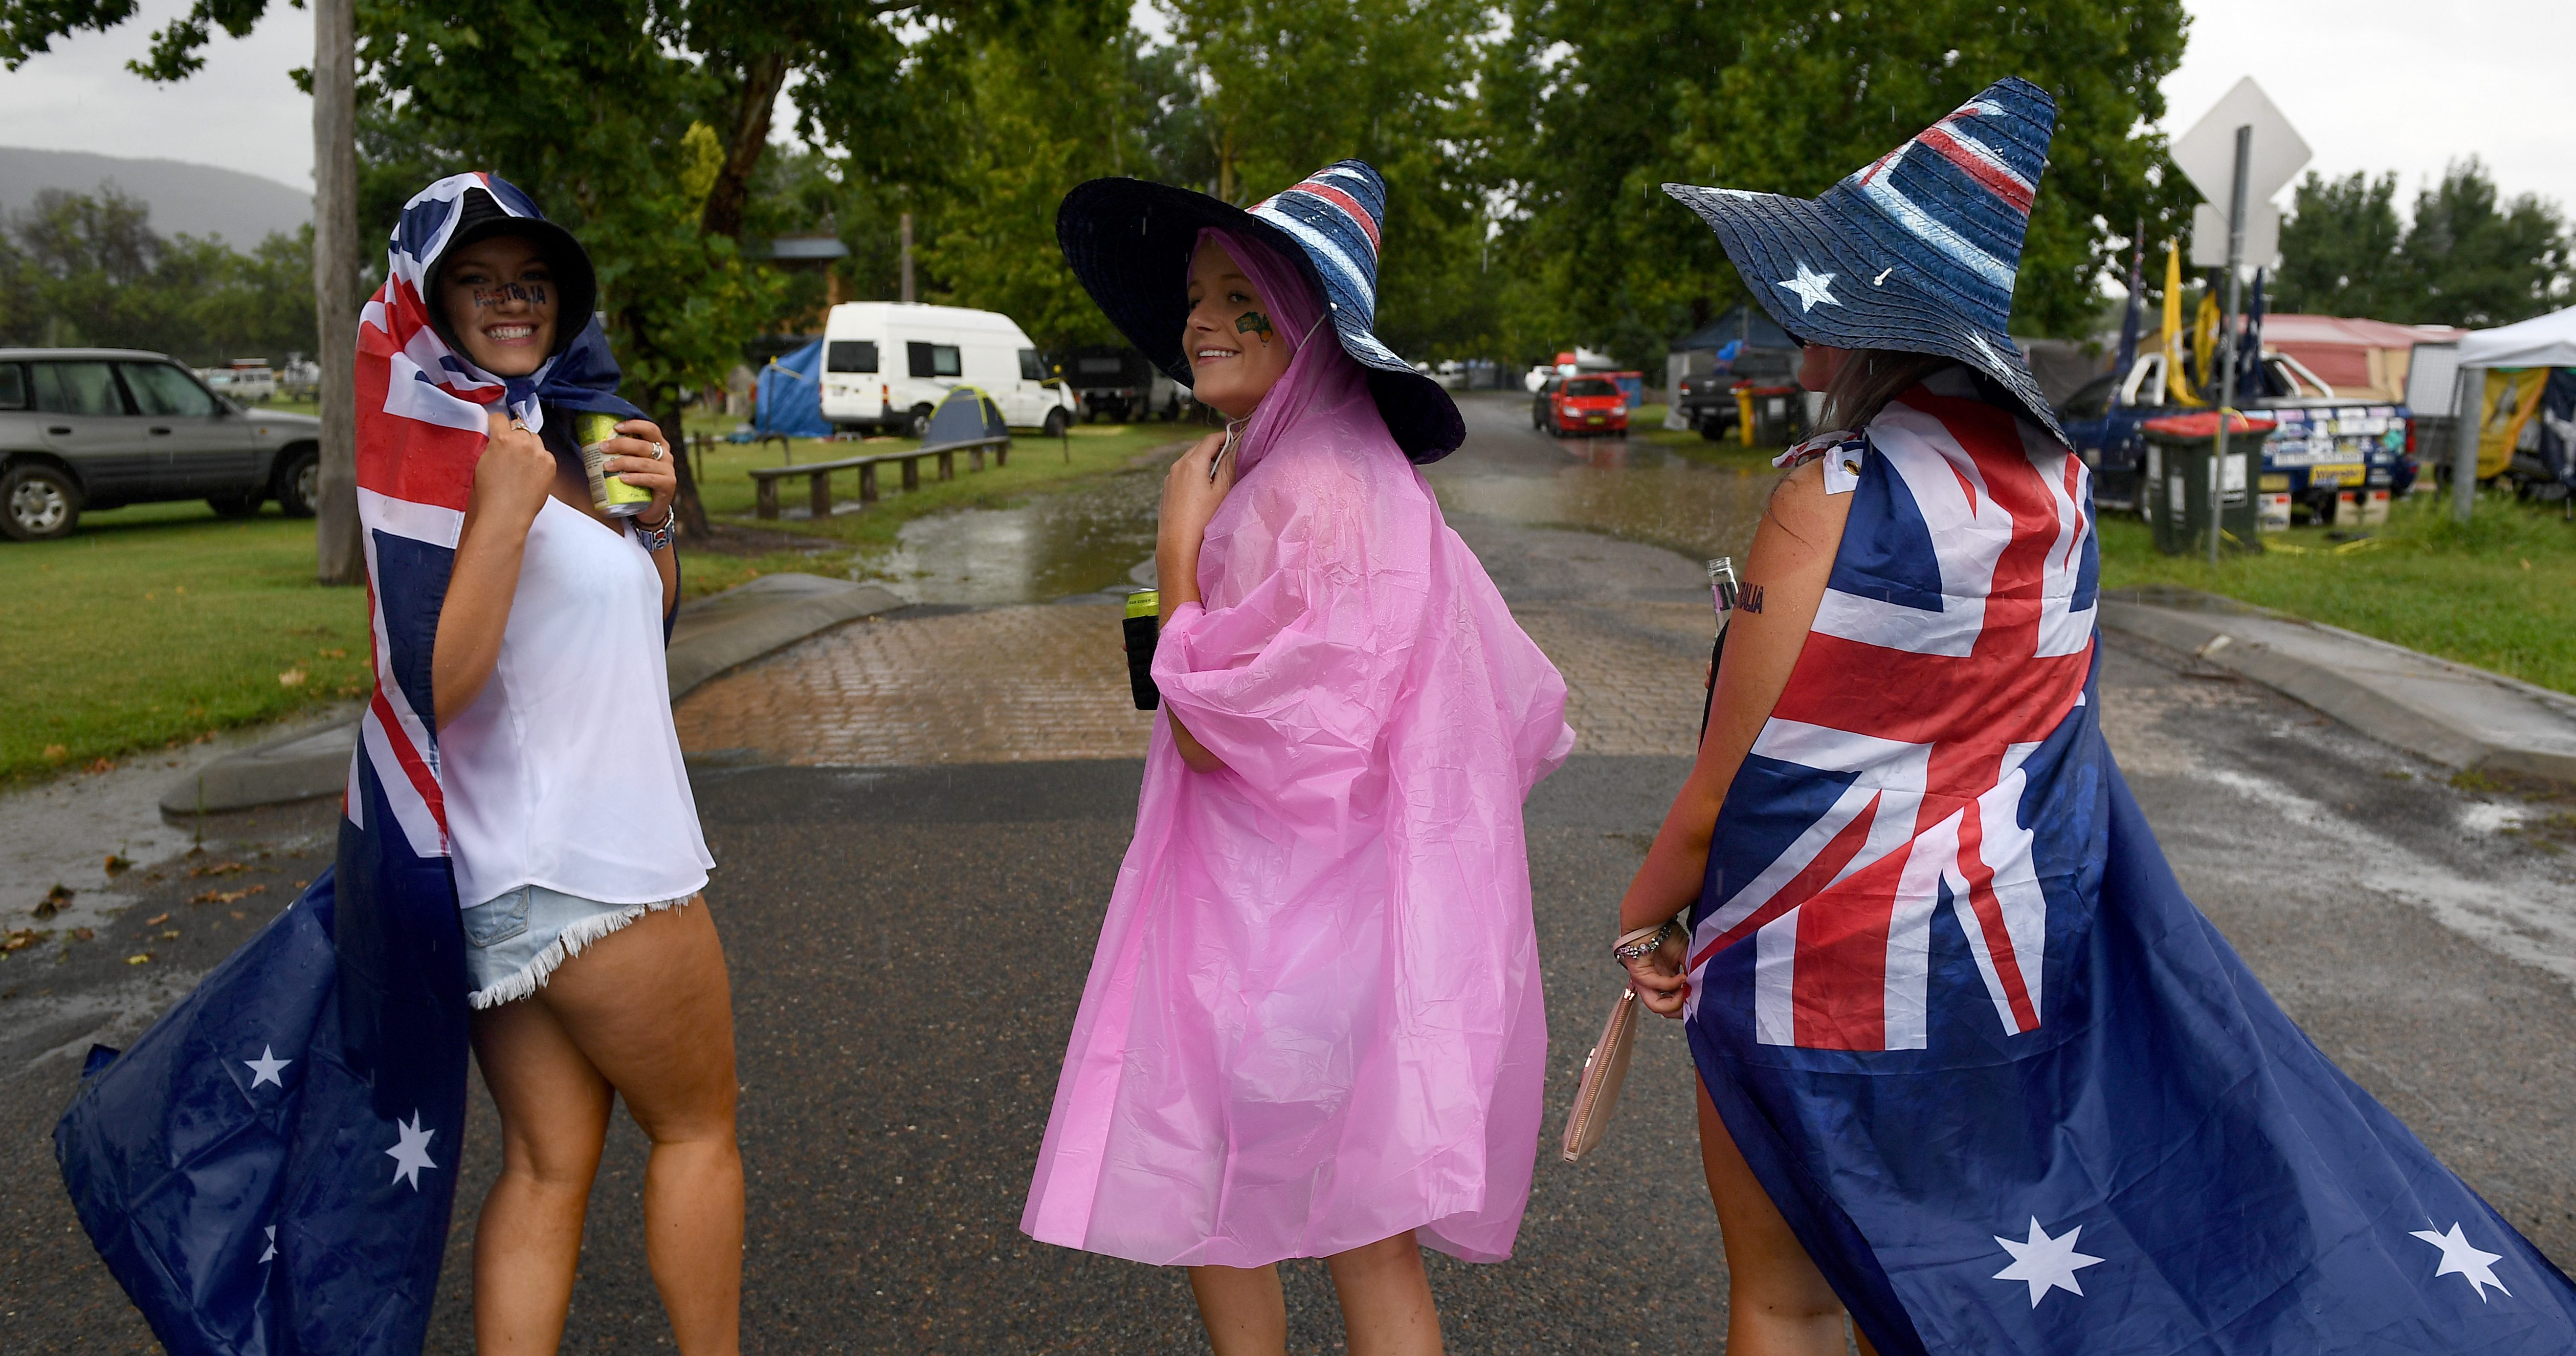 People celebrate Australia Day at the Tamworth Country Music Festival, in Tamworth, Australia, 26 January 2017.